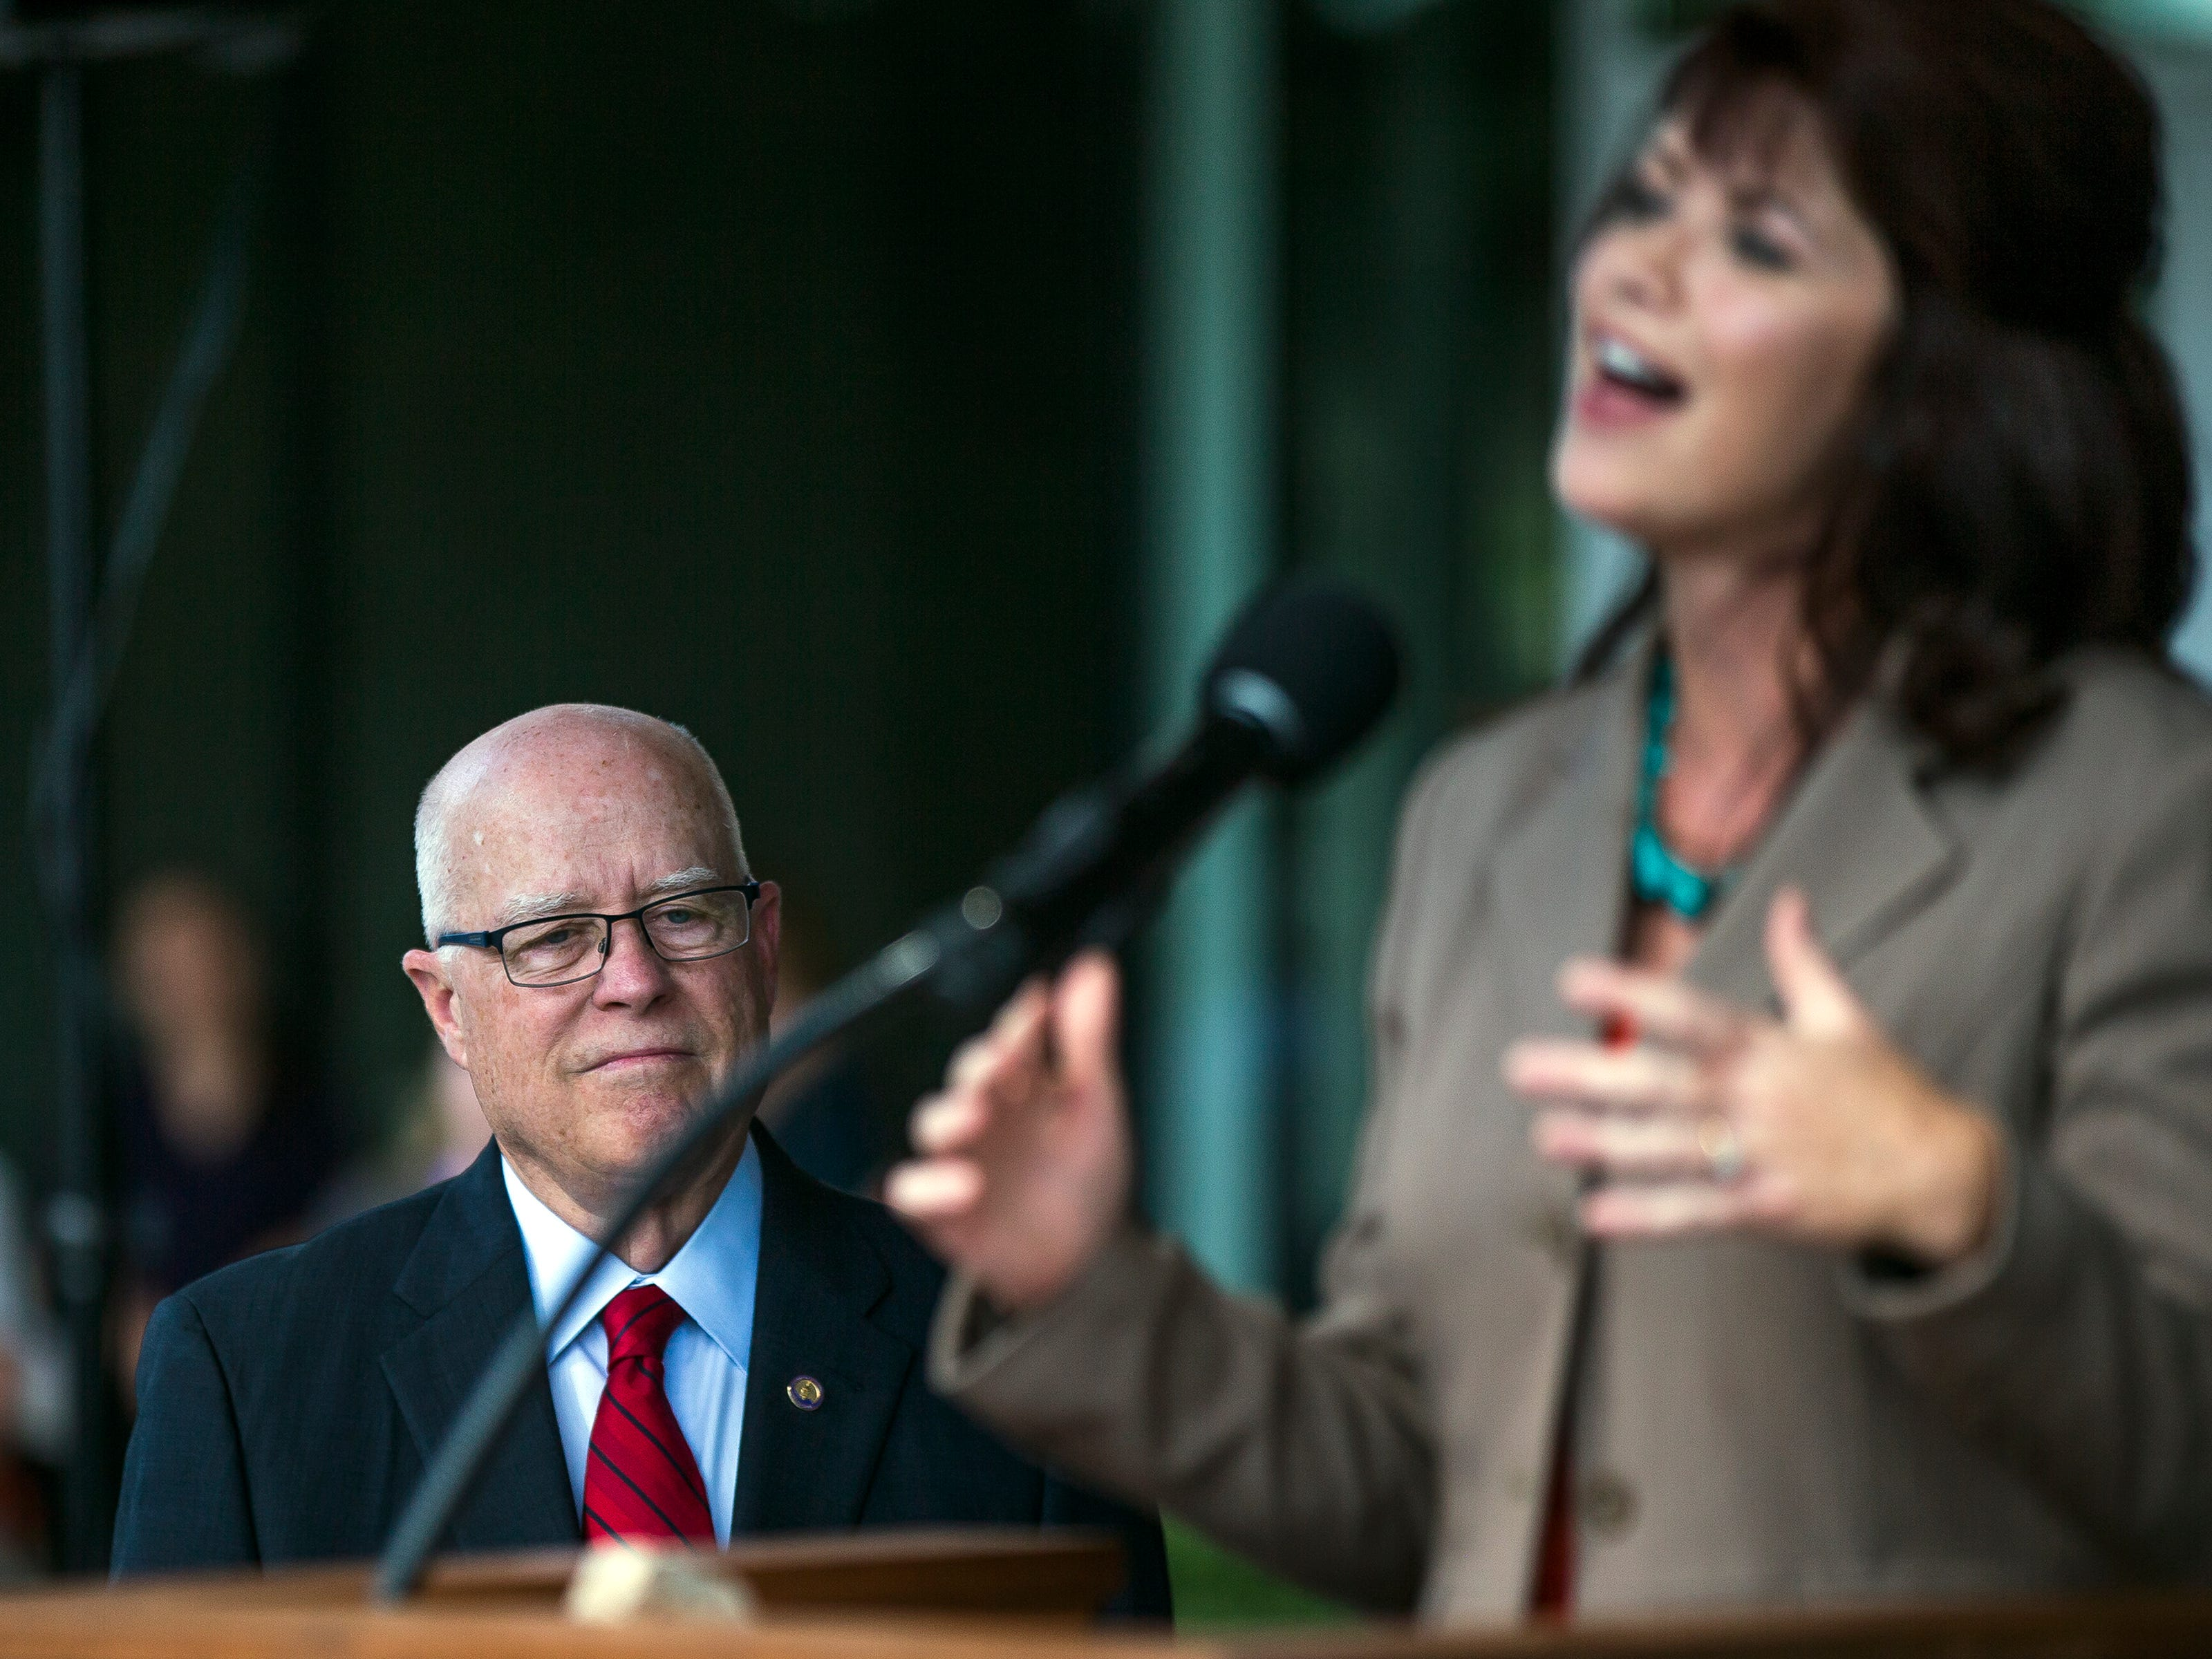 Chancellor Bernie Patterson listens as Lt. Gov. Rebecca Kleefisch speaks during the opening ceremony for the Chemistry Biology Building at the University of Wisconsin-Stevens Point in Stevens Point, Wis., Sept. 14, 2018.